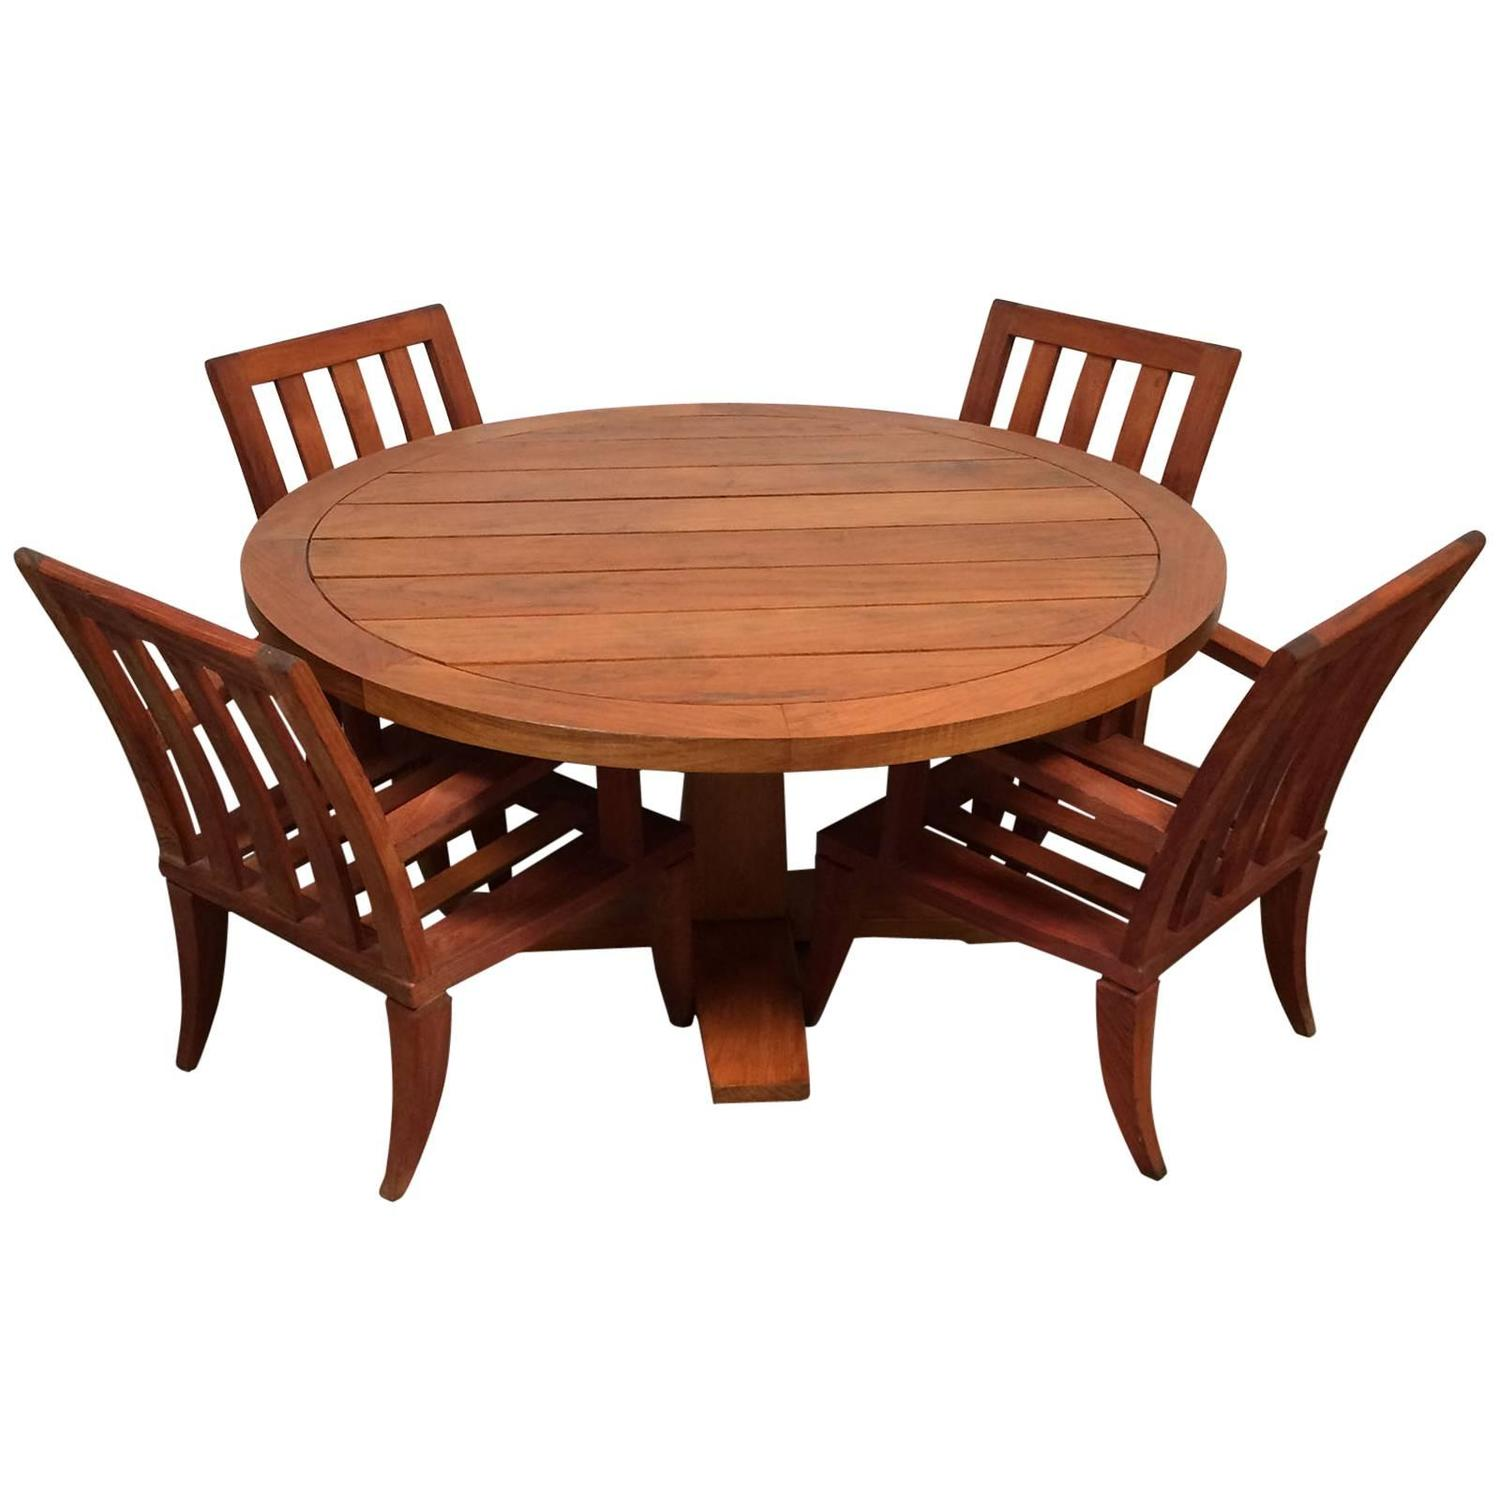 Teak outdoor dining set sturdy table and chairs at 1stdibs for Outdoor teak dining table